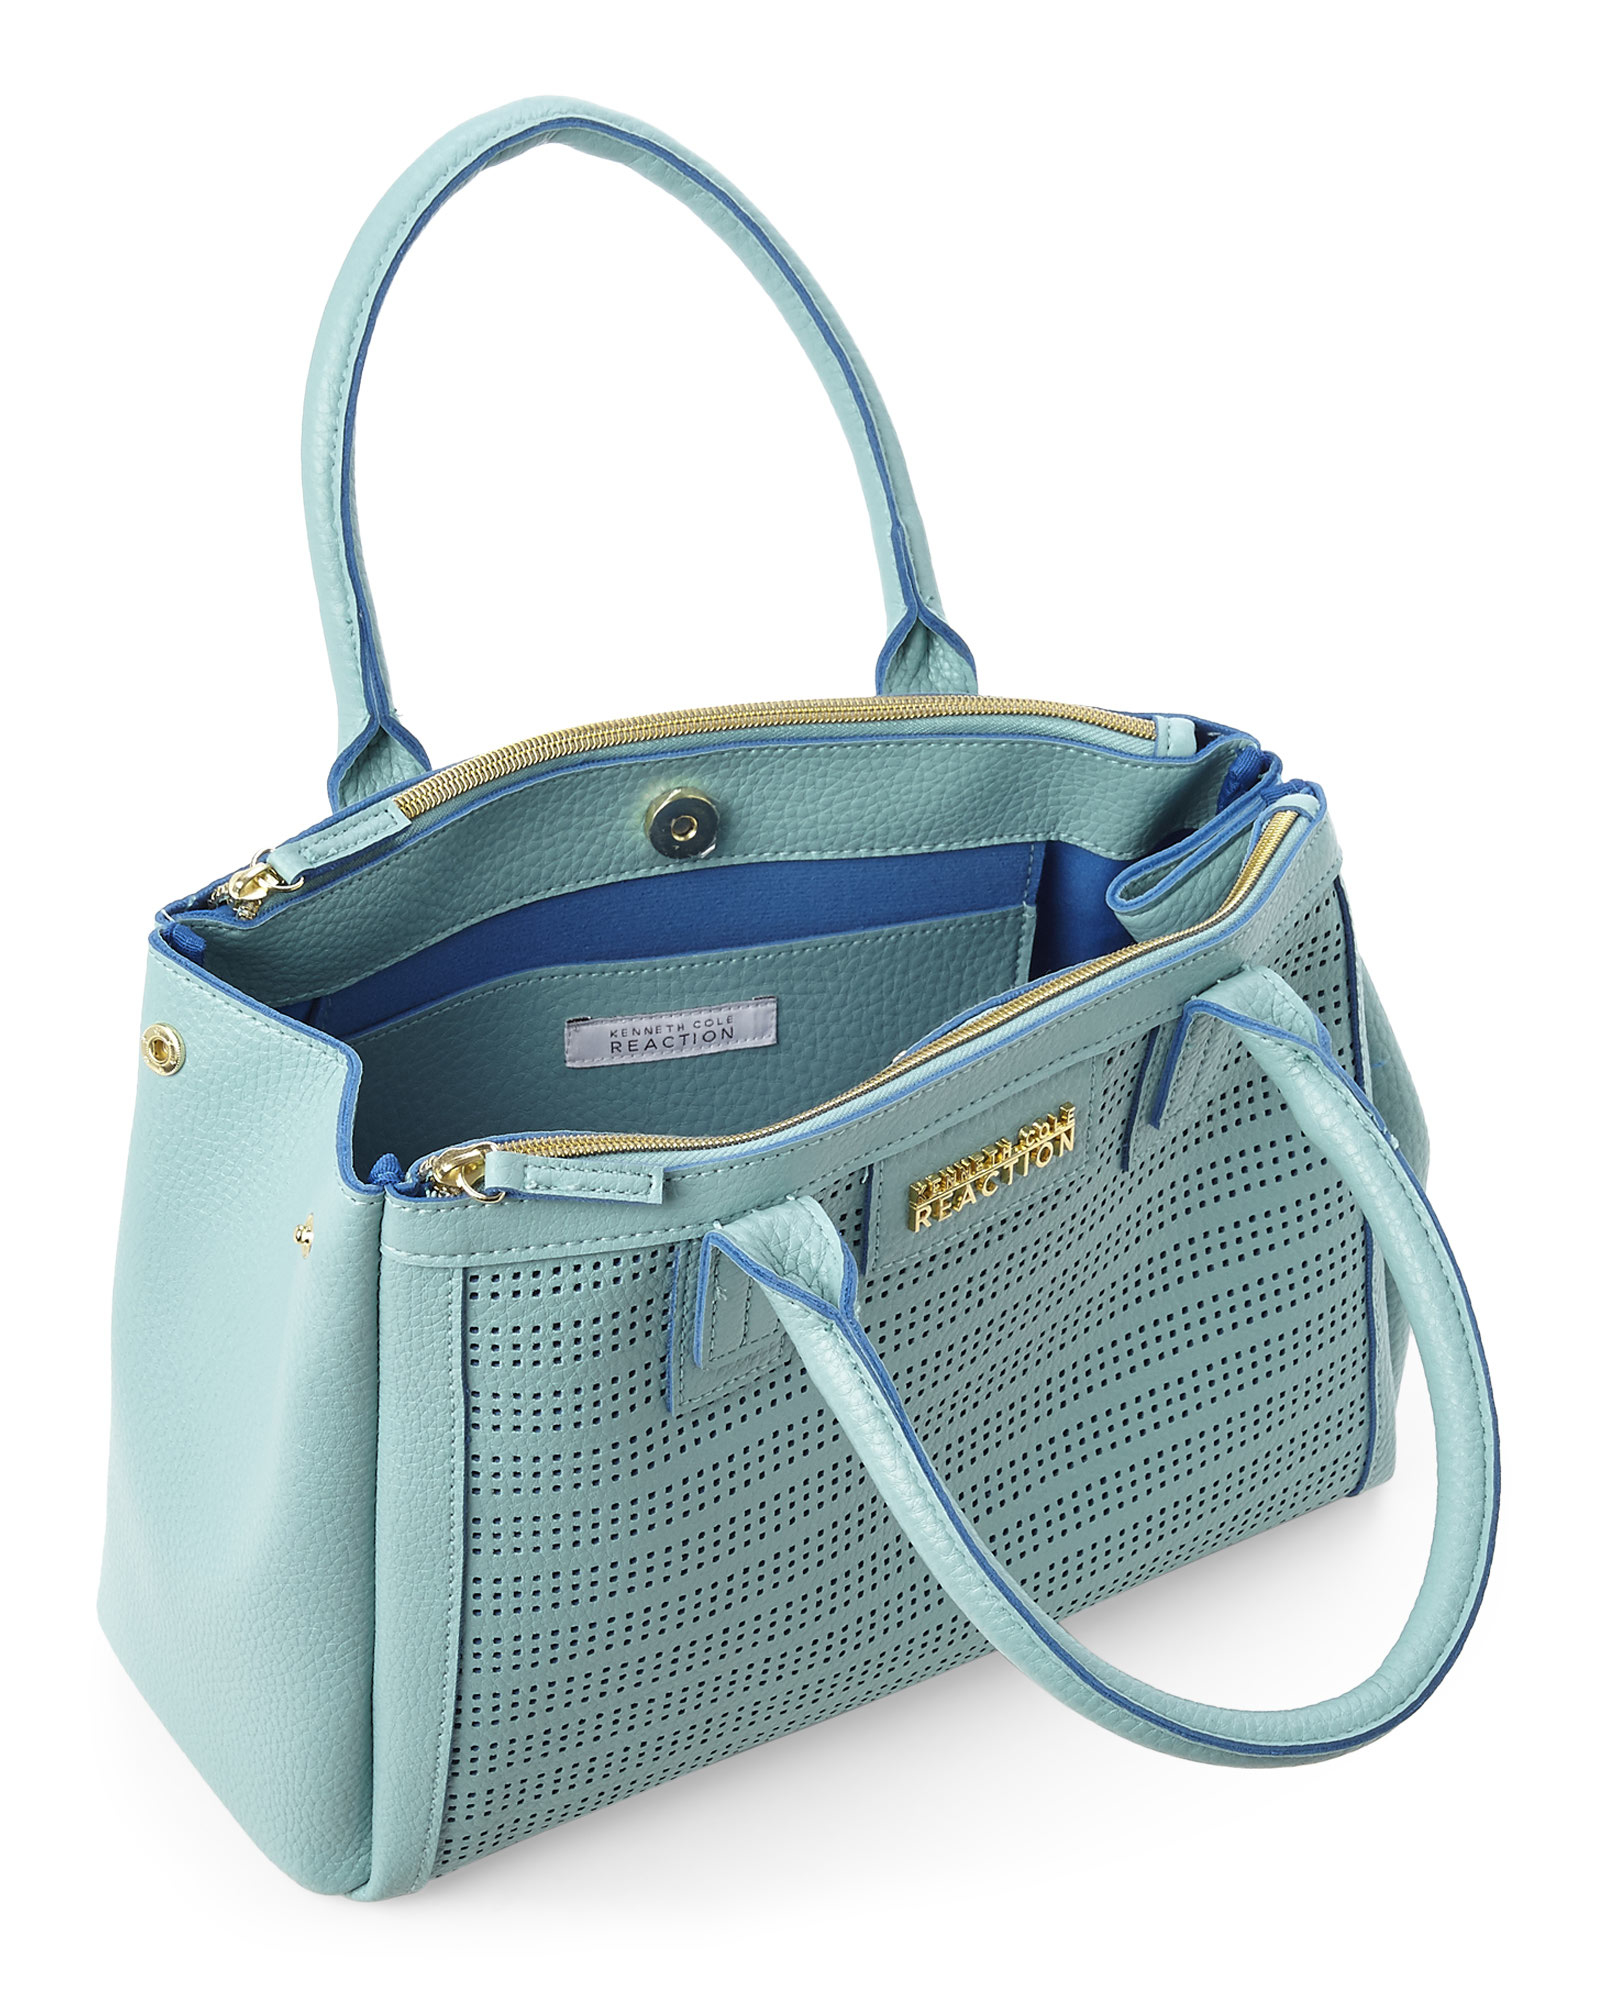 Kenneth cole reaction Turquoise Vineyard Satchel in Blue | Lyst